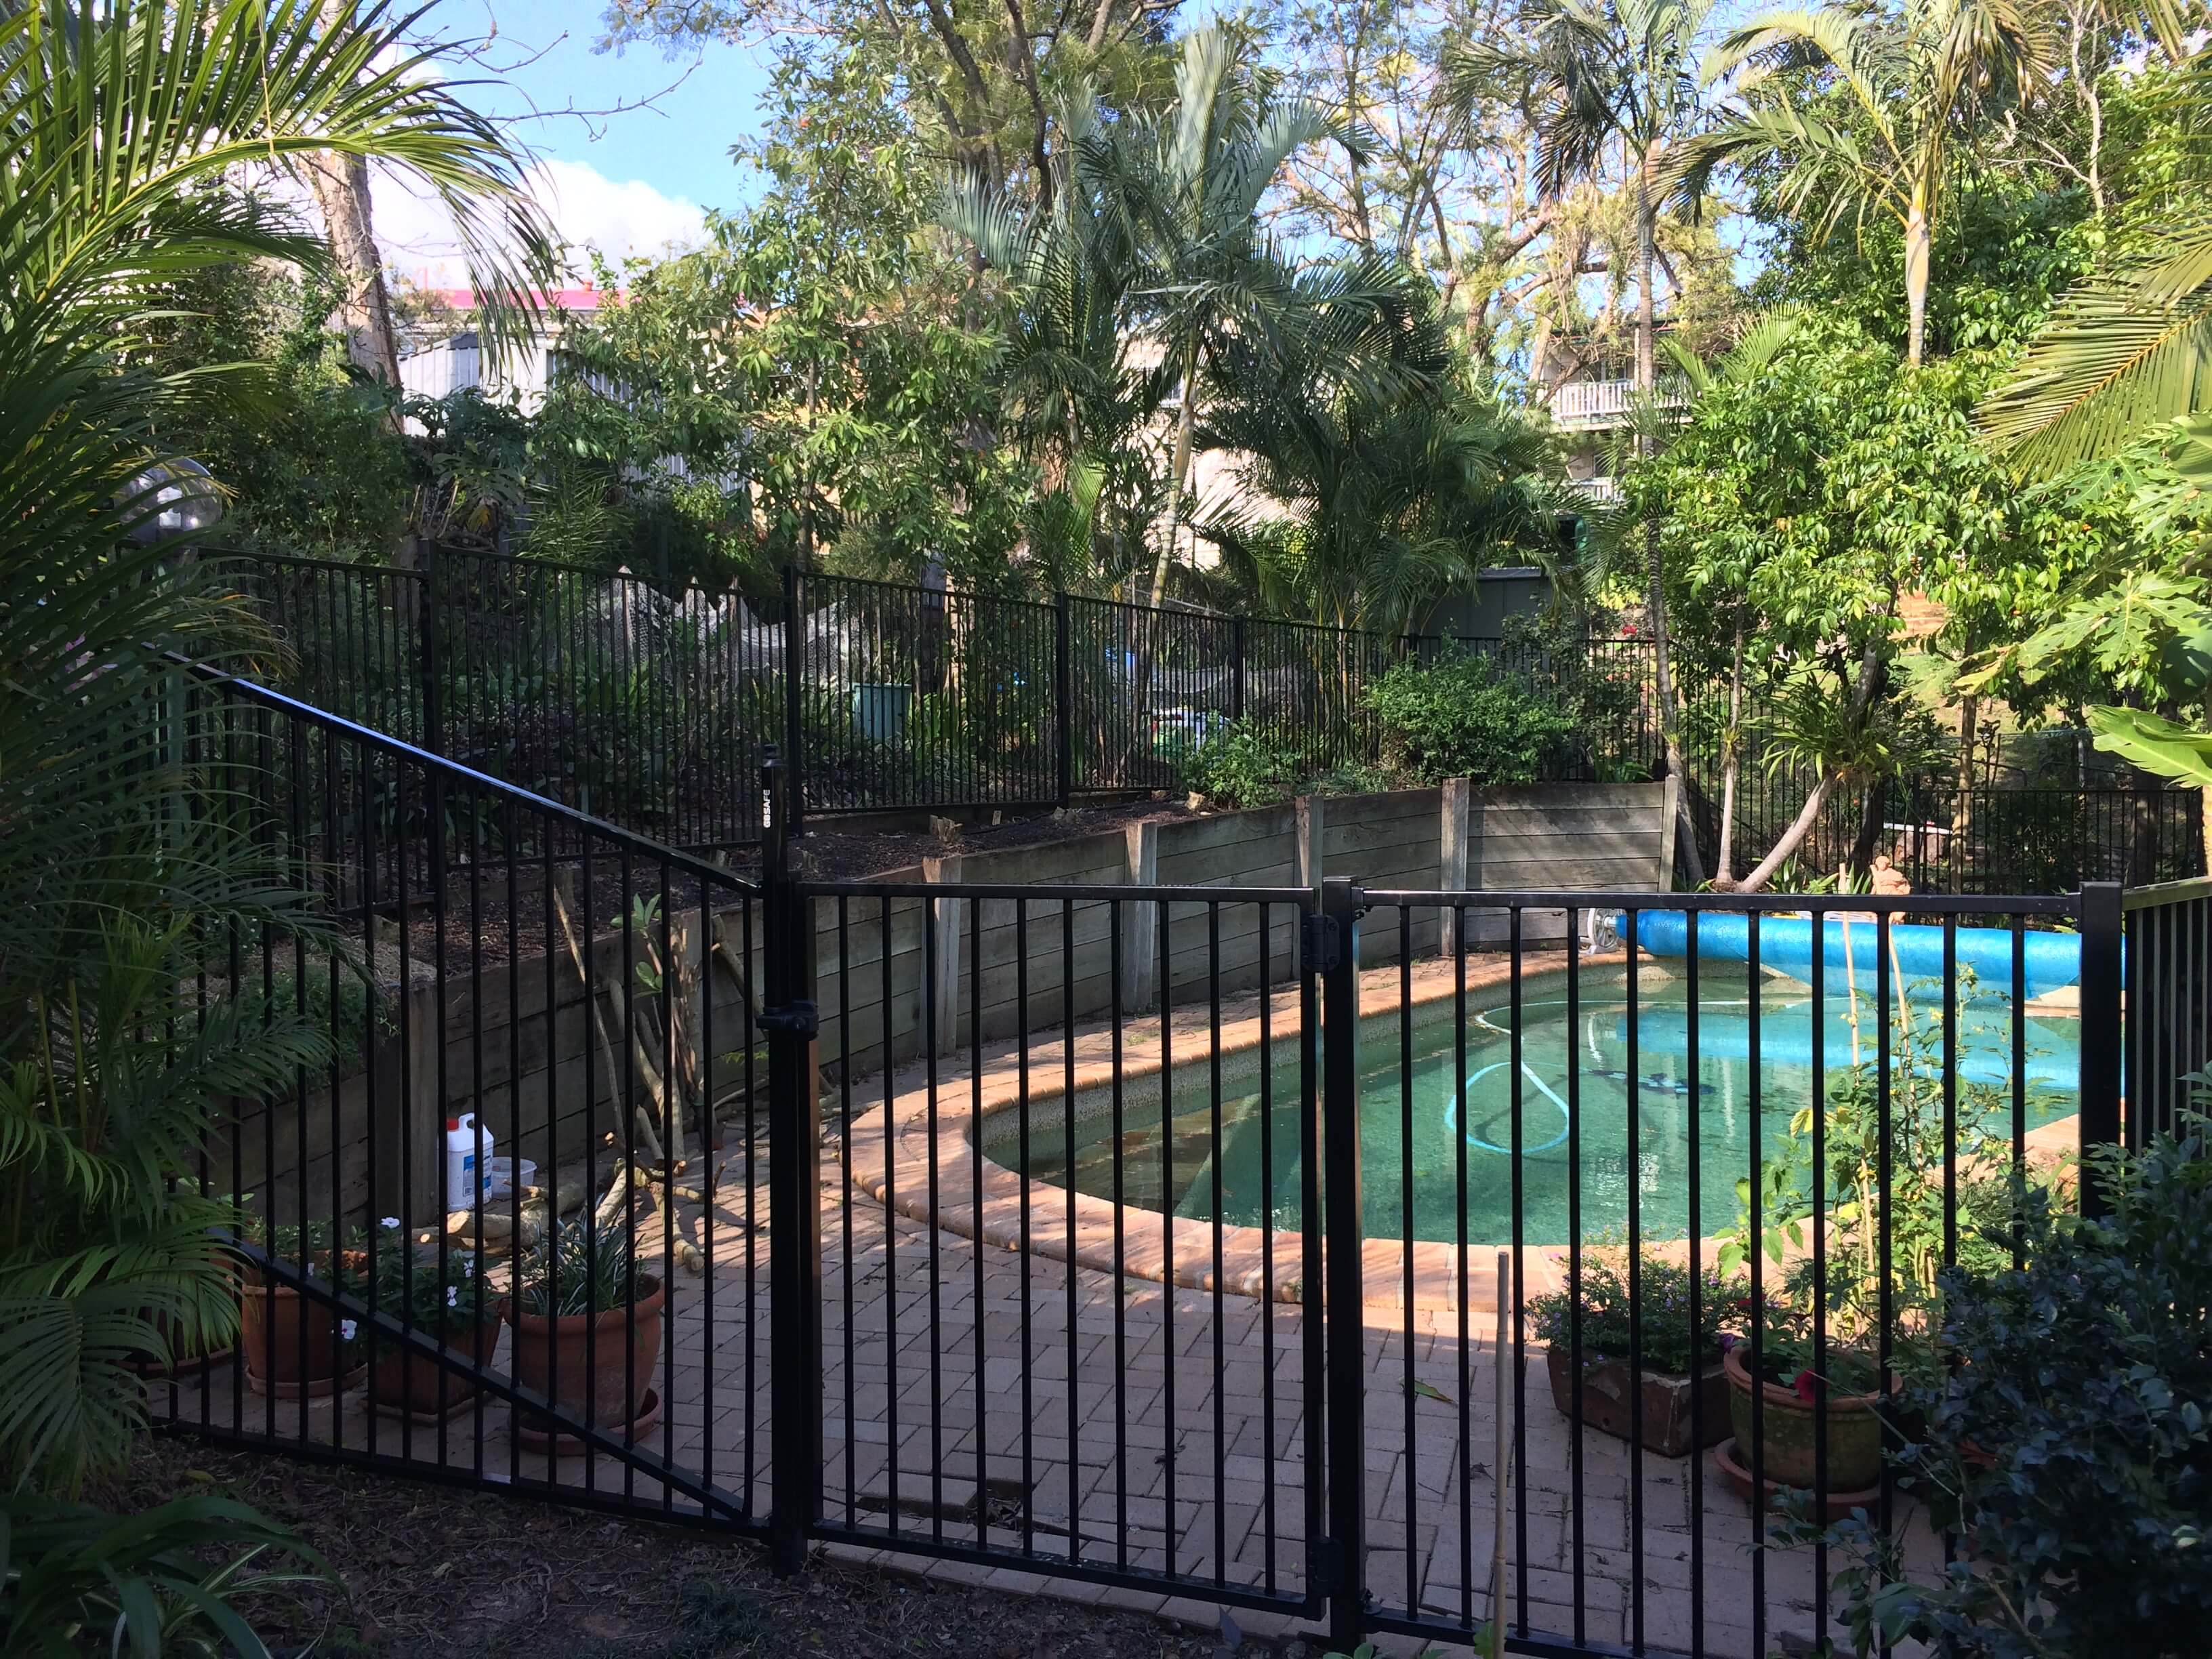 mewald building pool fence gate entry